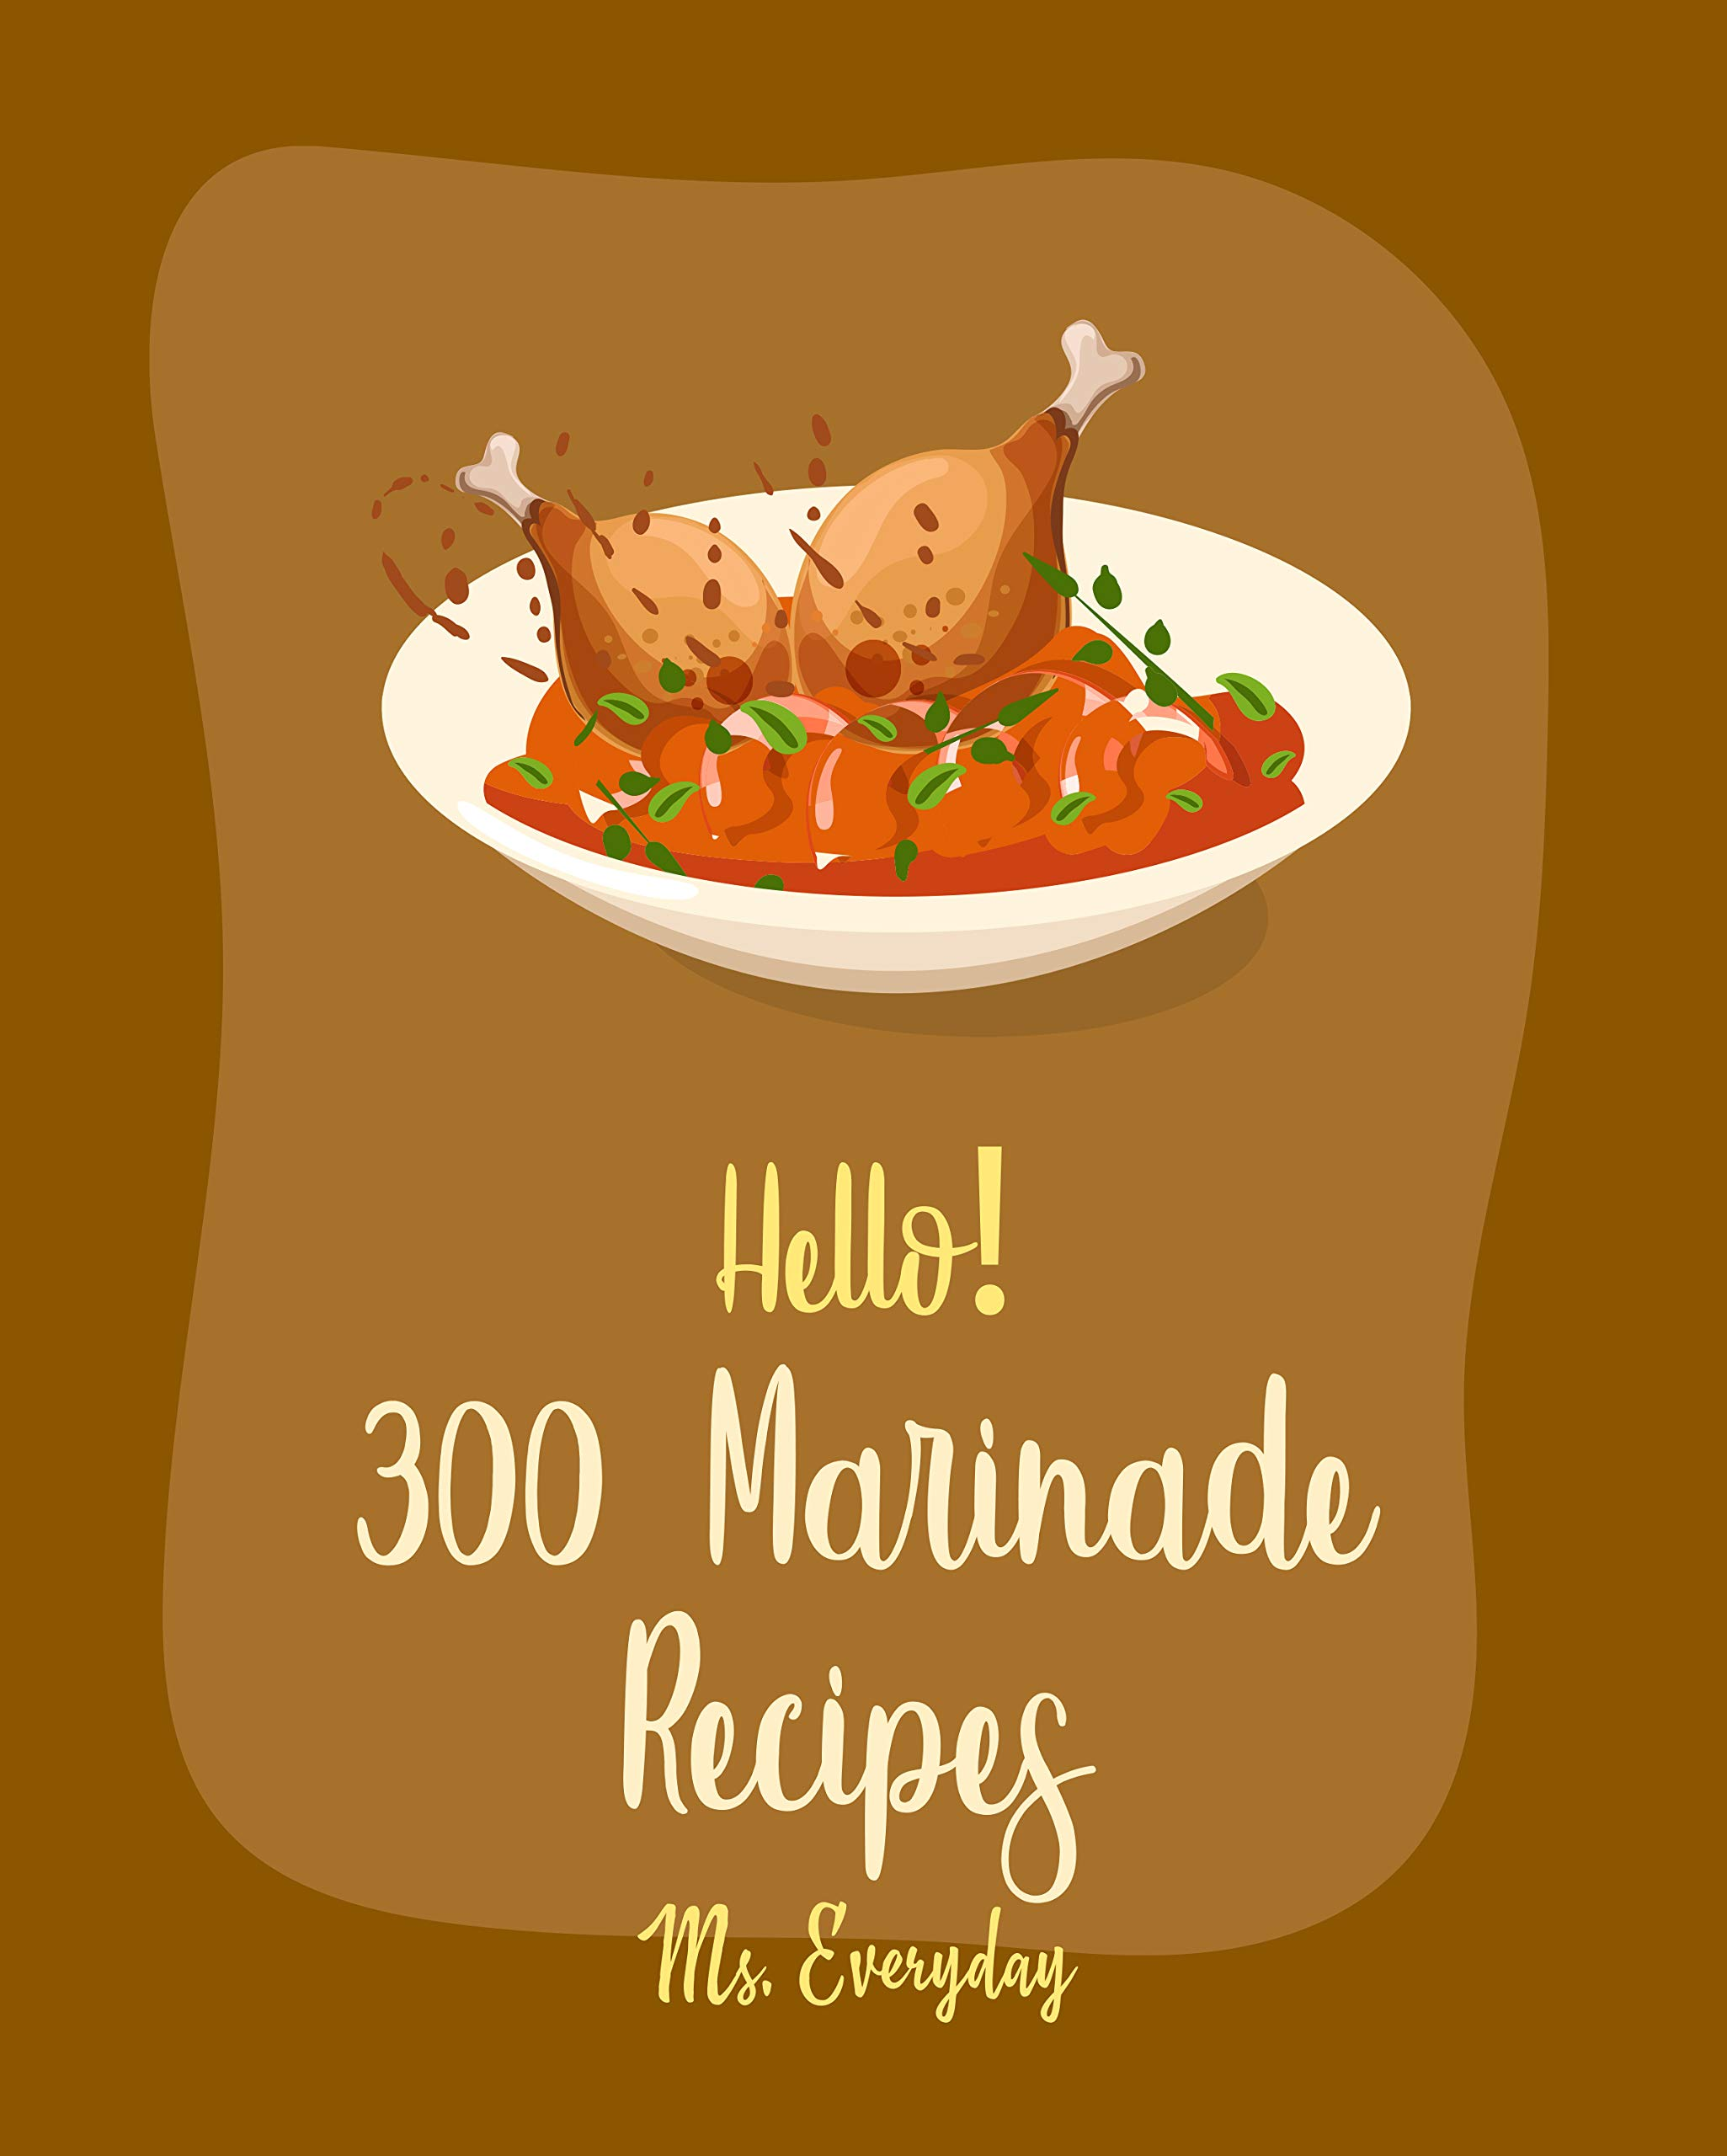 Image OfHello! 300 Marinade Recipes: Best Marinade Cookbook Ever For Beginners BBQ Rib Cookbook, Chicken Marinade Recipes, Dry Ru...